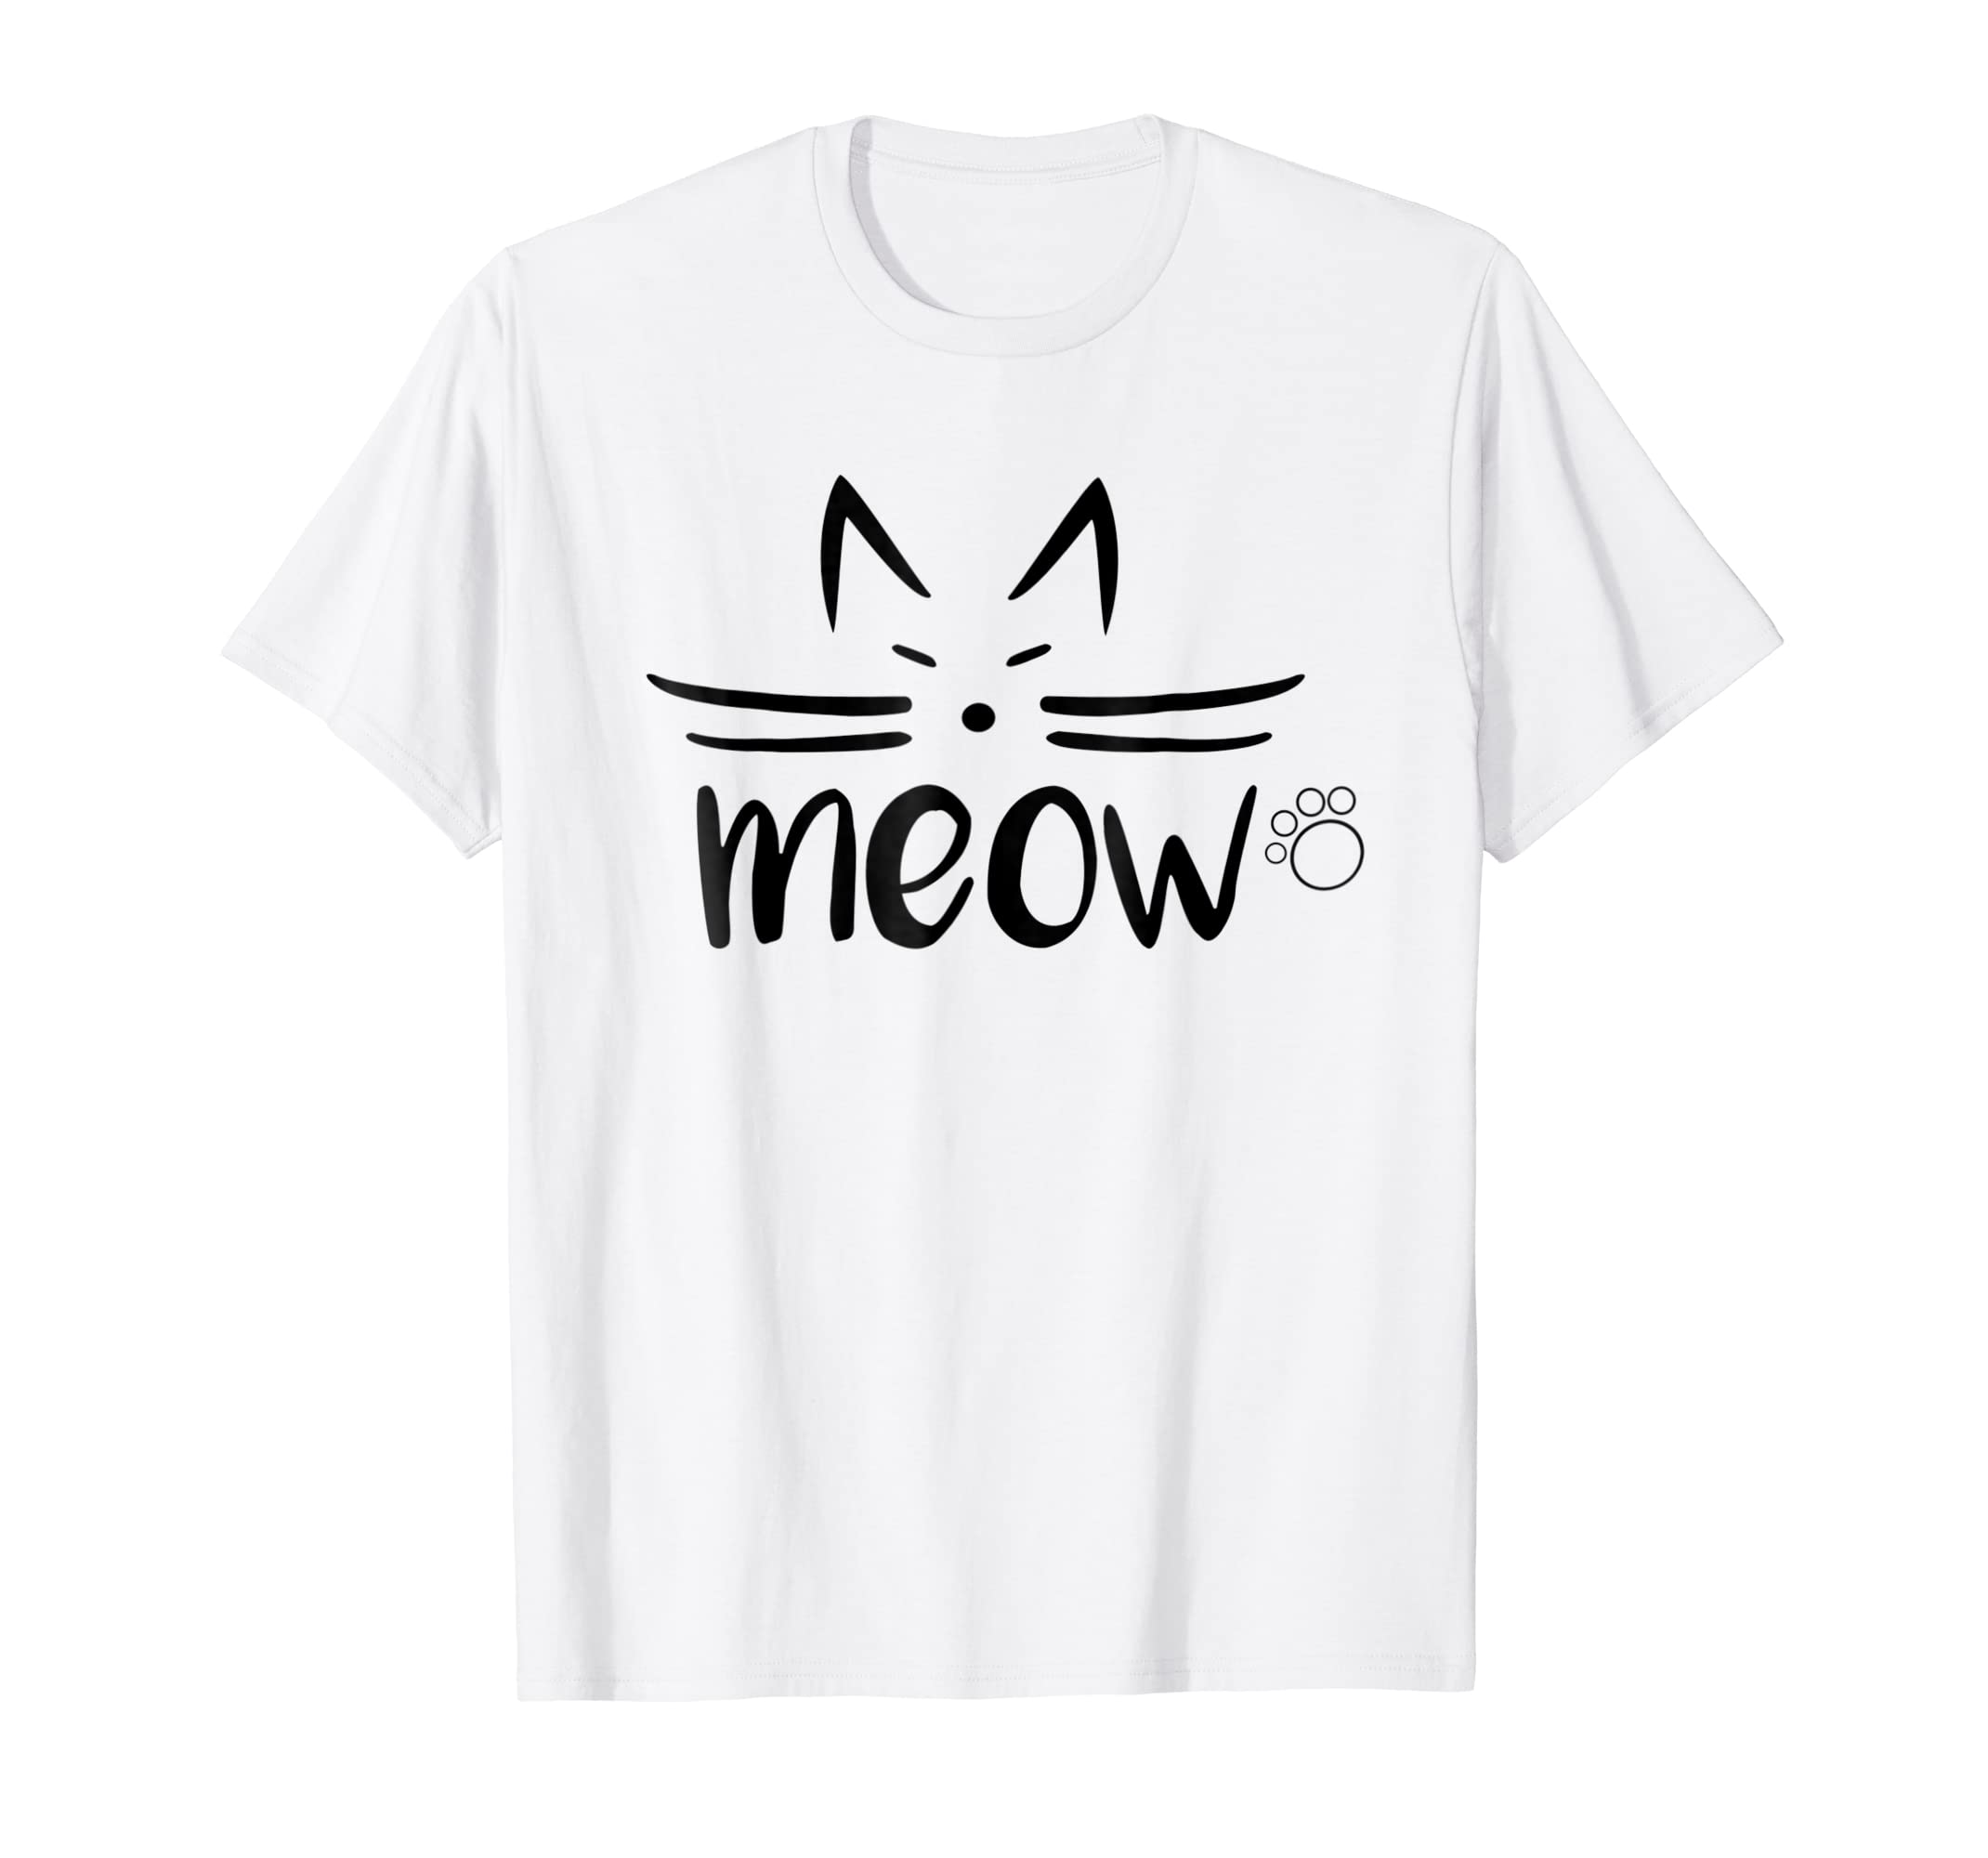 951fb38cf Amazon.com: MEOW Tshirt for Women - Cool Tshirt Designs For Girls: Clothing